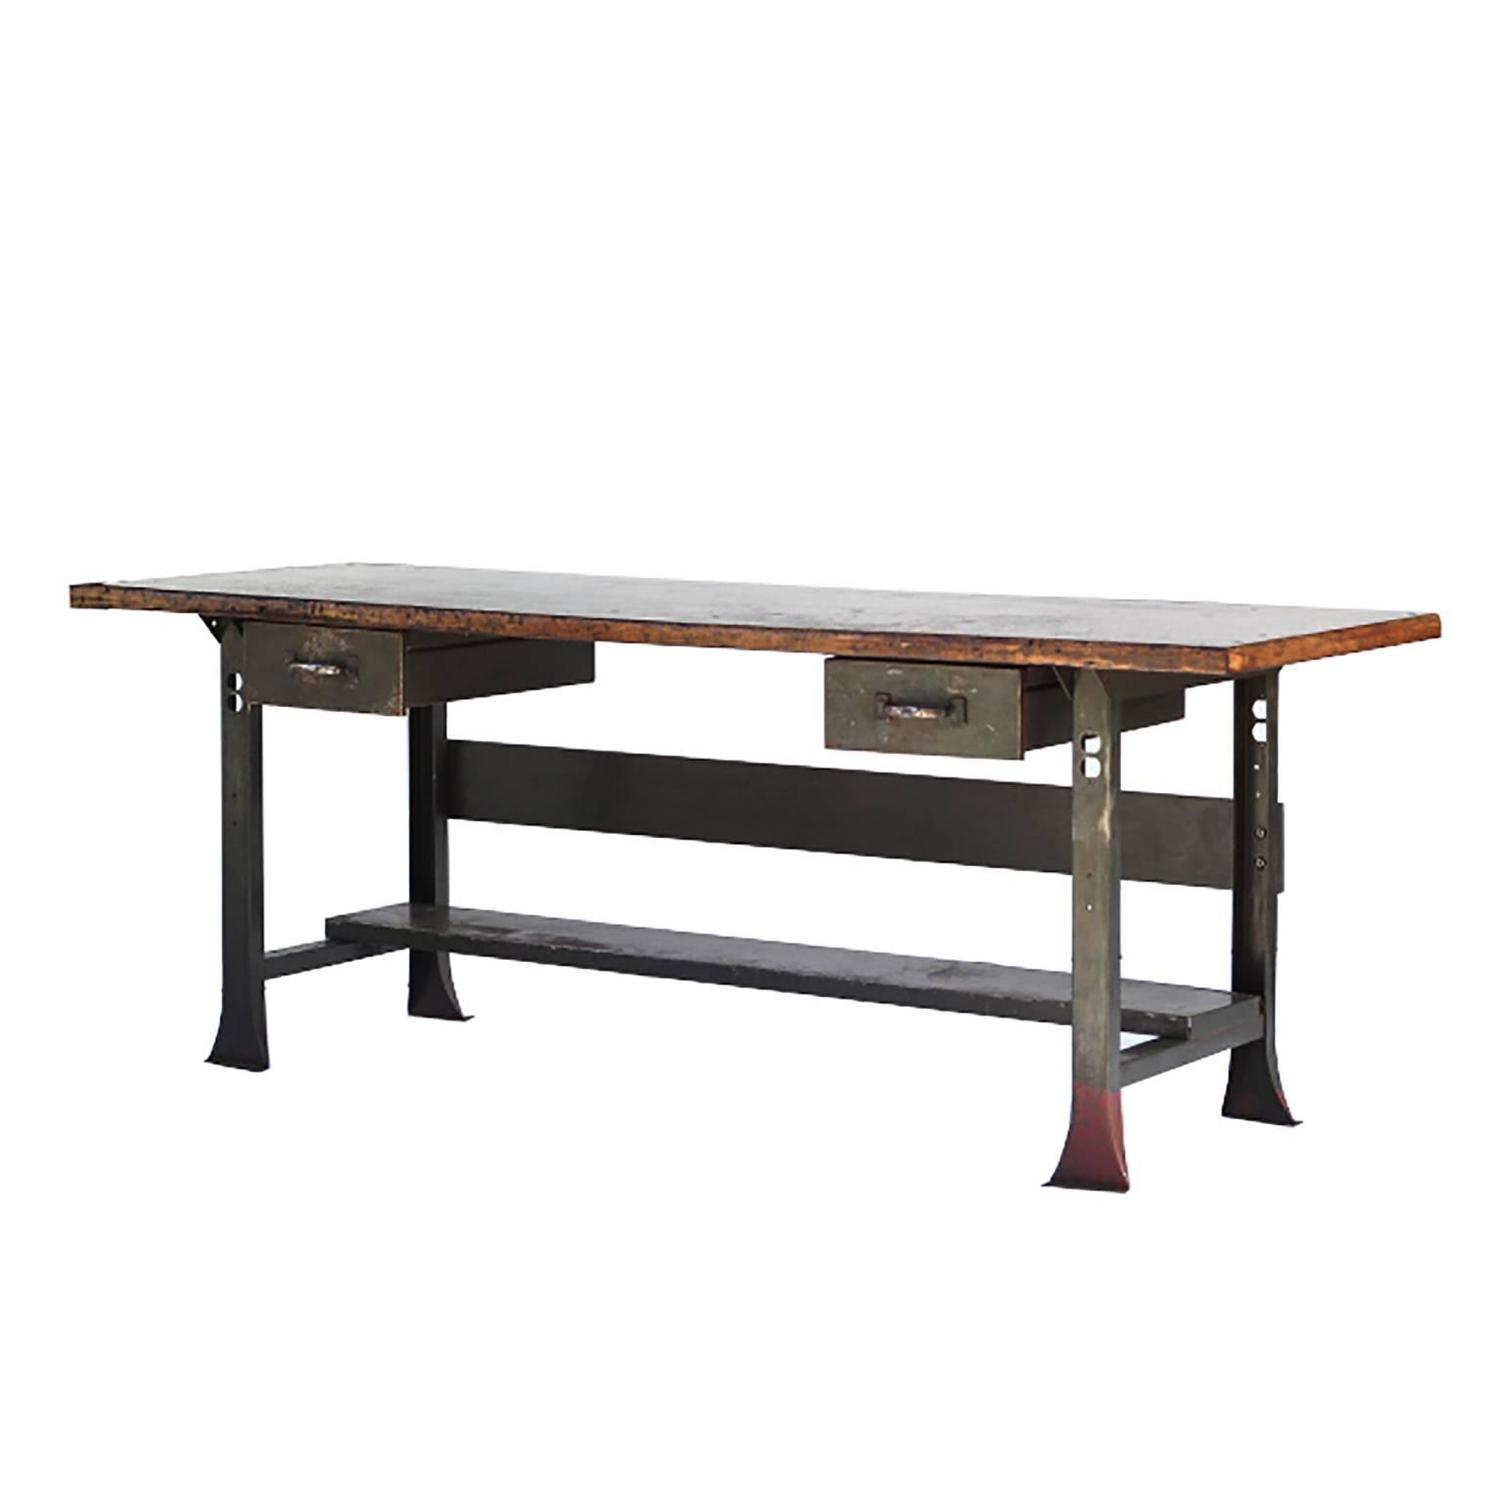 Shop Table: 1930s Industrial Table/Workbench With Orignial Machine